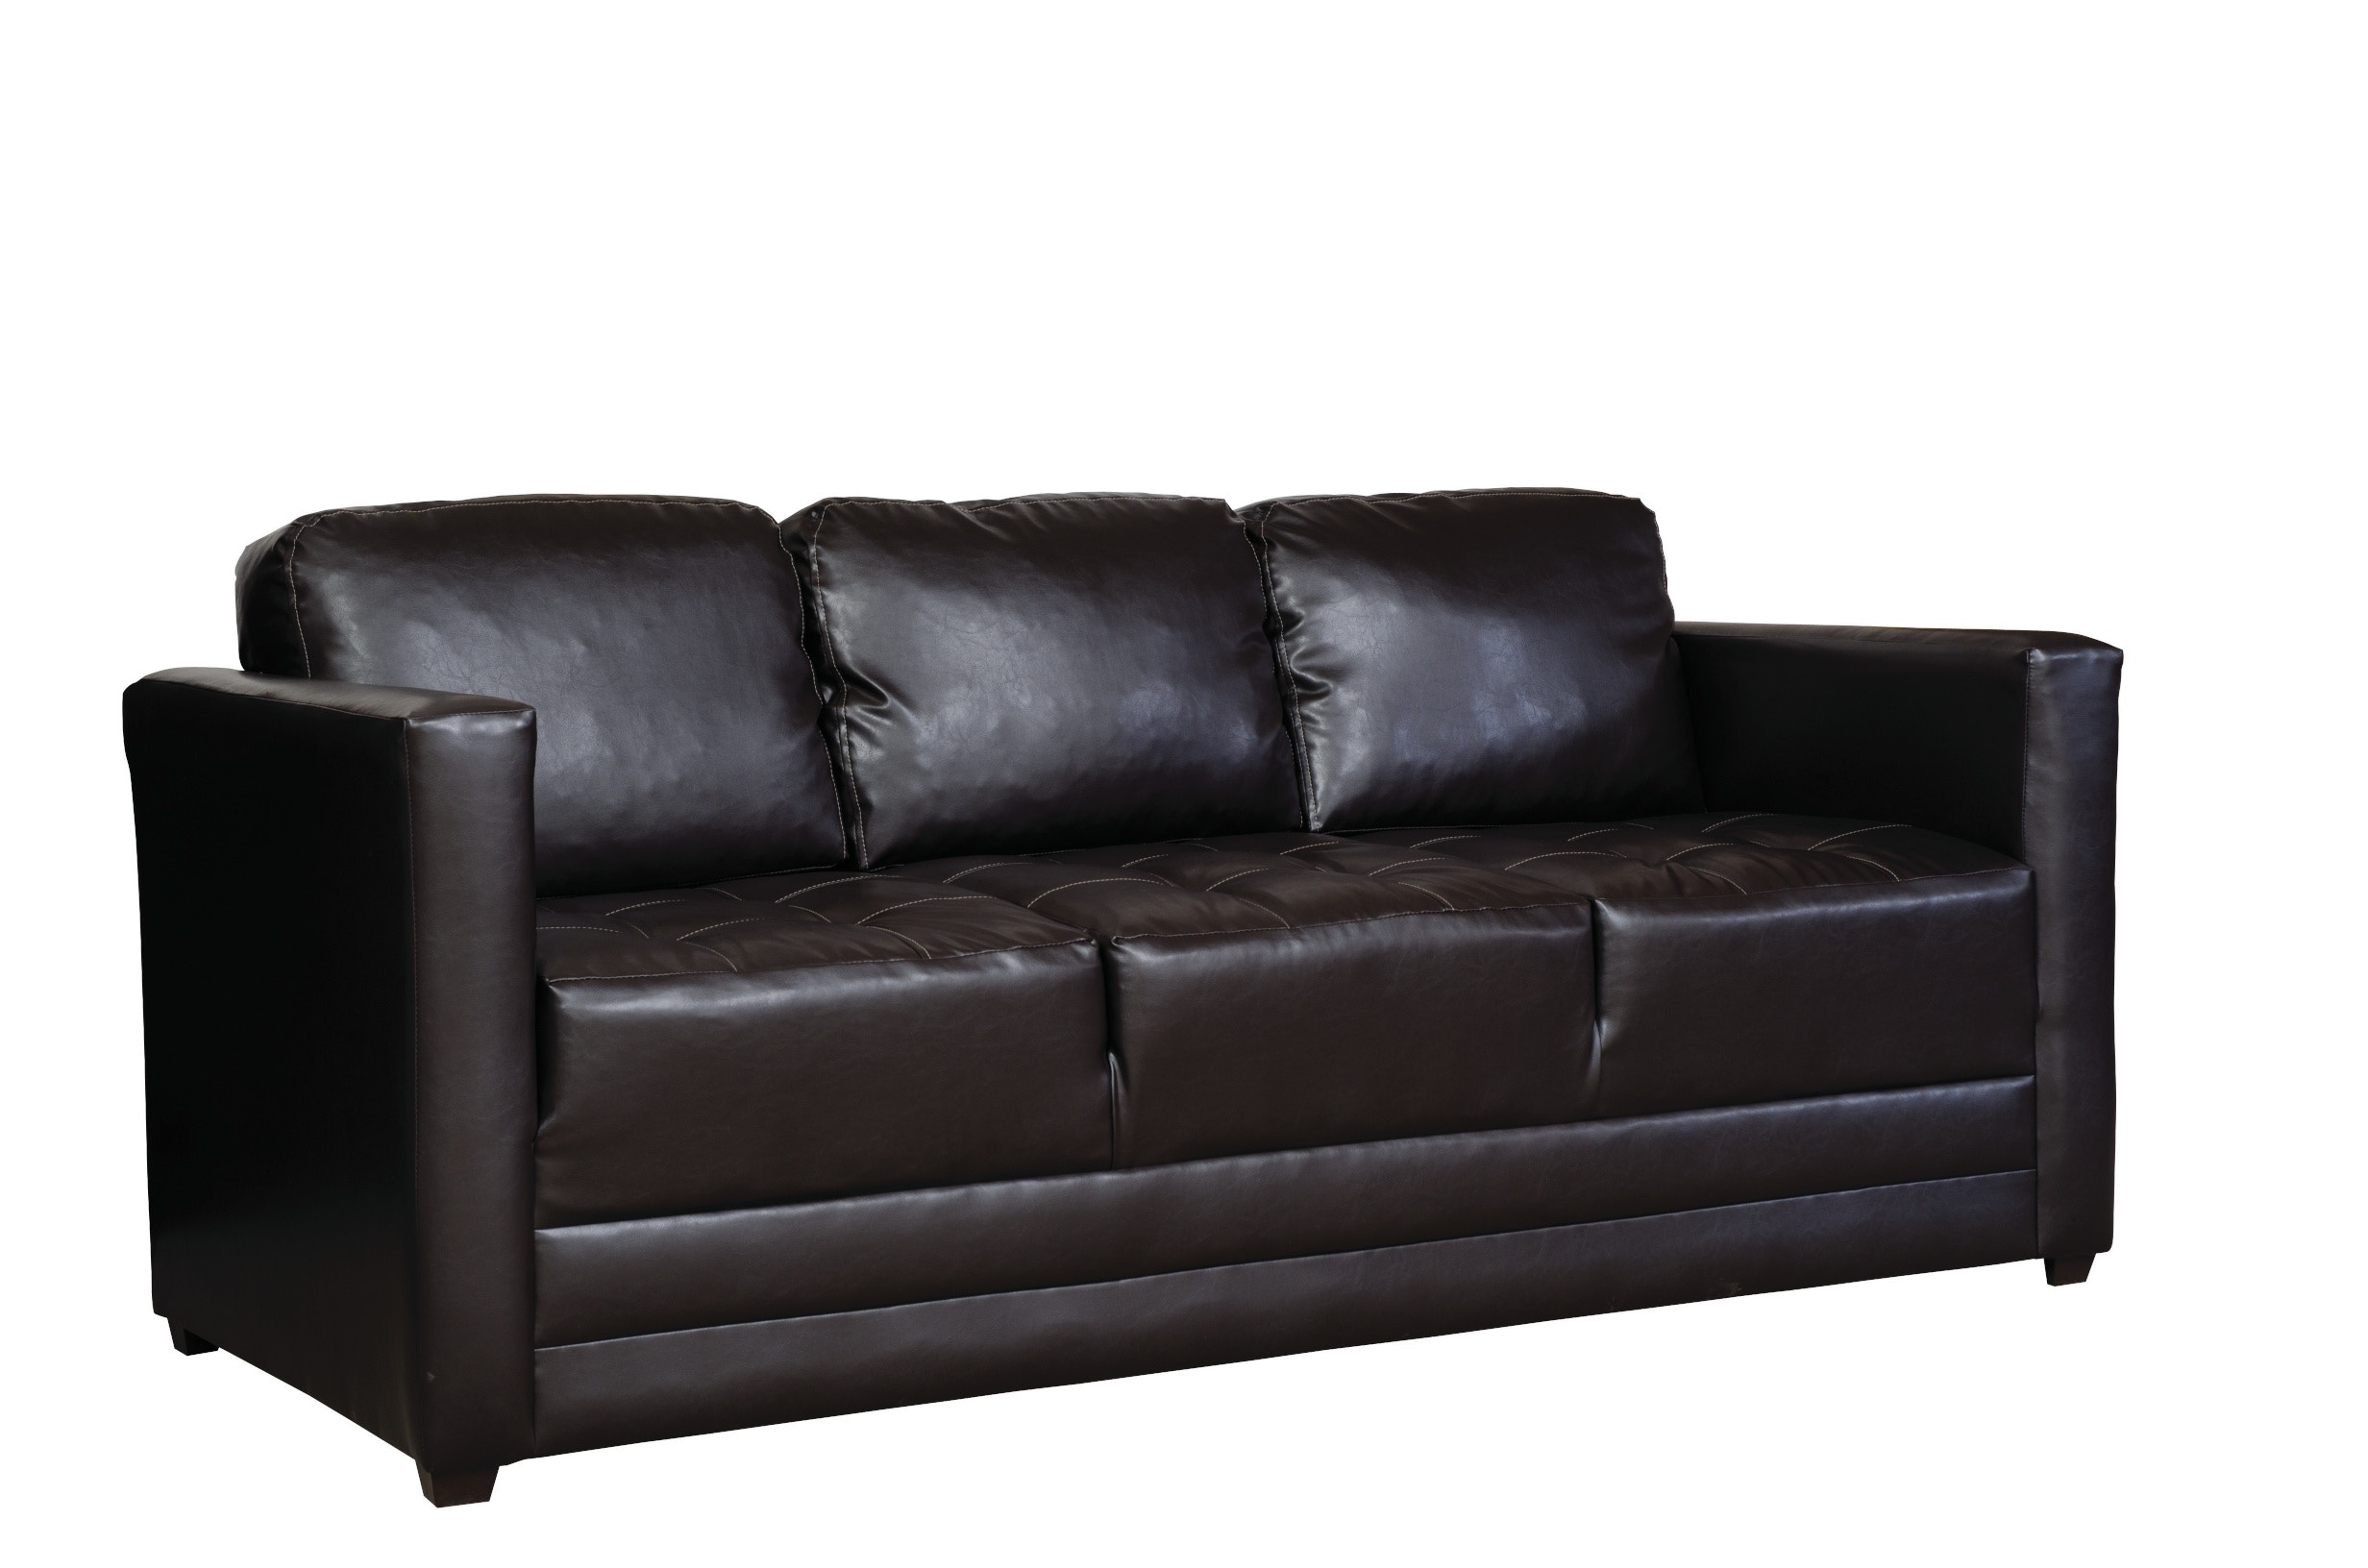 Hughes Furniture Sofa 1095S